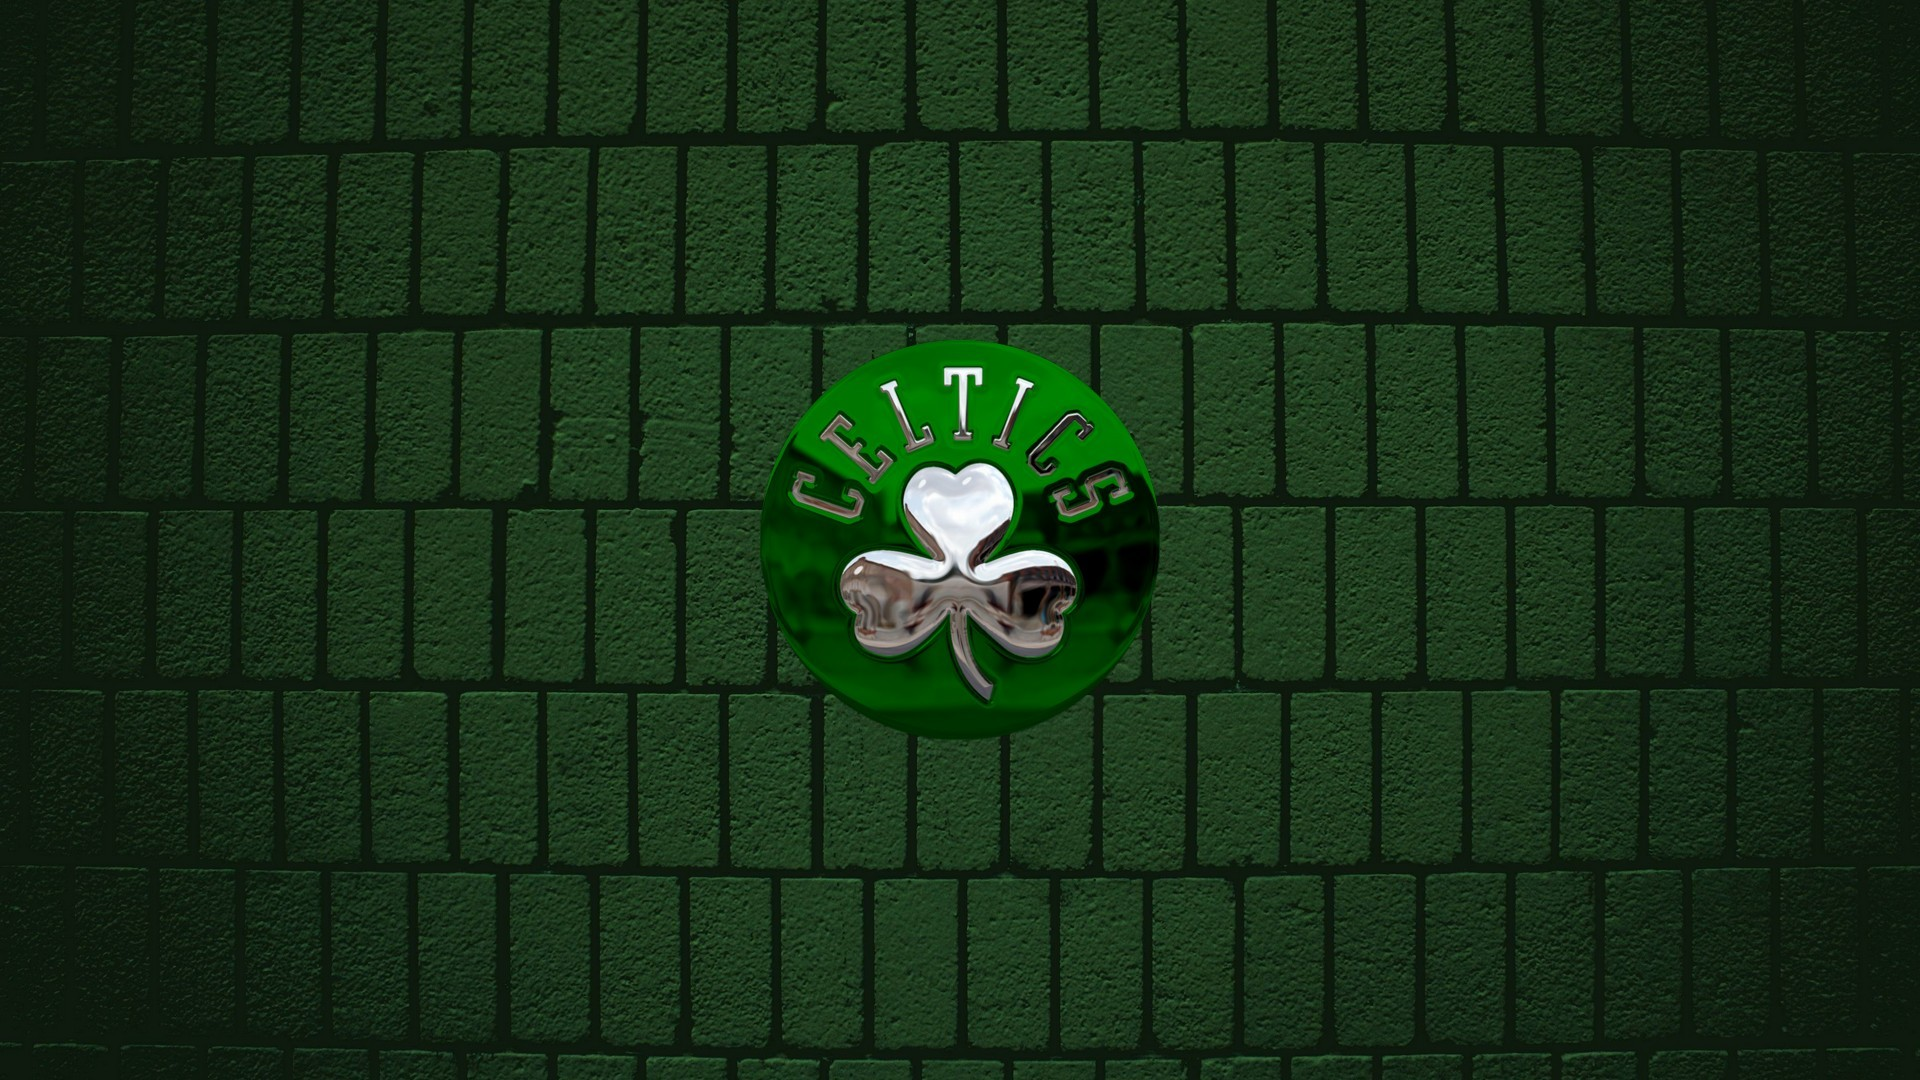 1920x1080 Wallpaper Desktop Boston Celtics Logo HD with image dimensions   pixel. You can make this